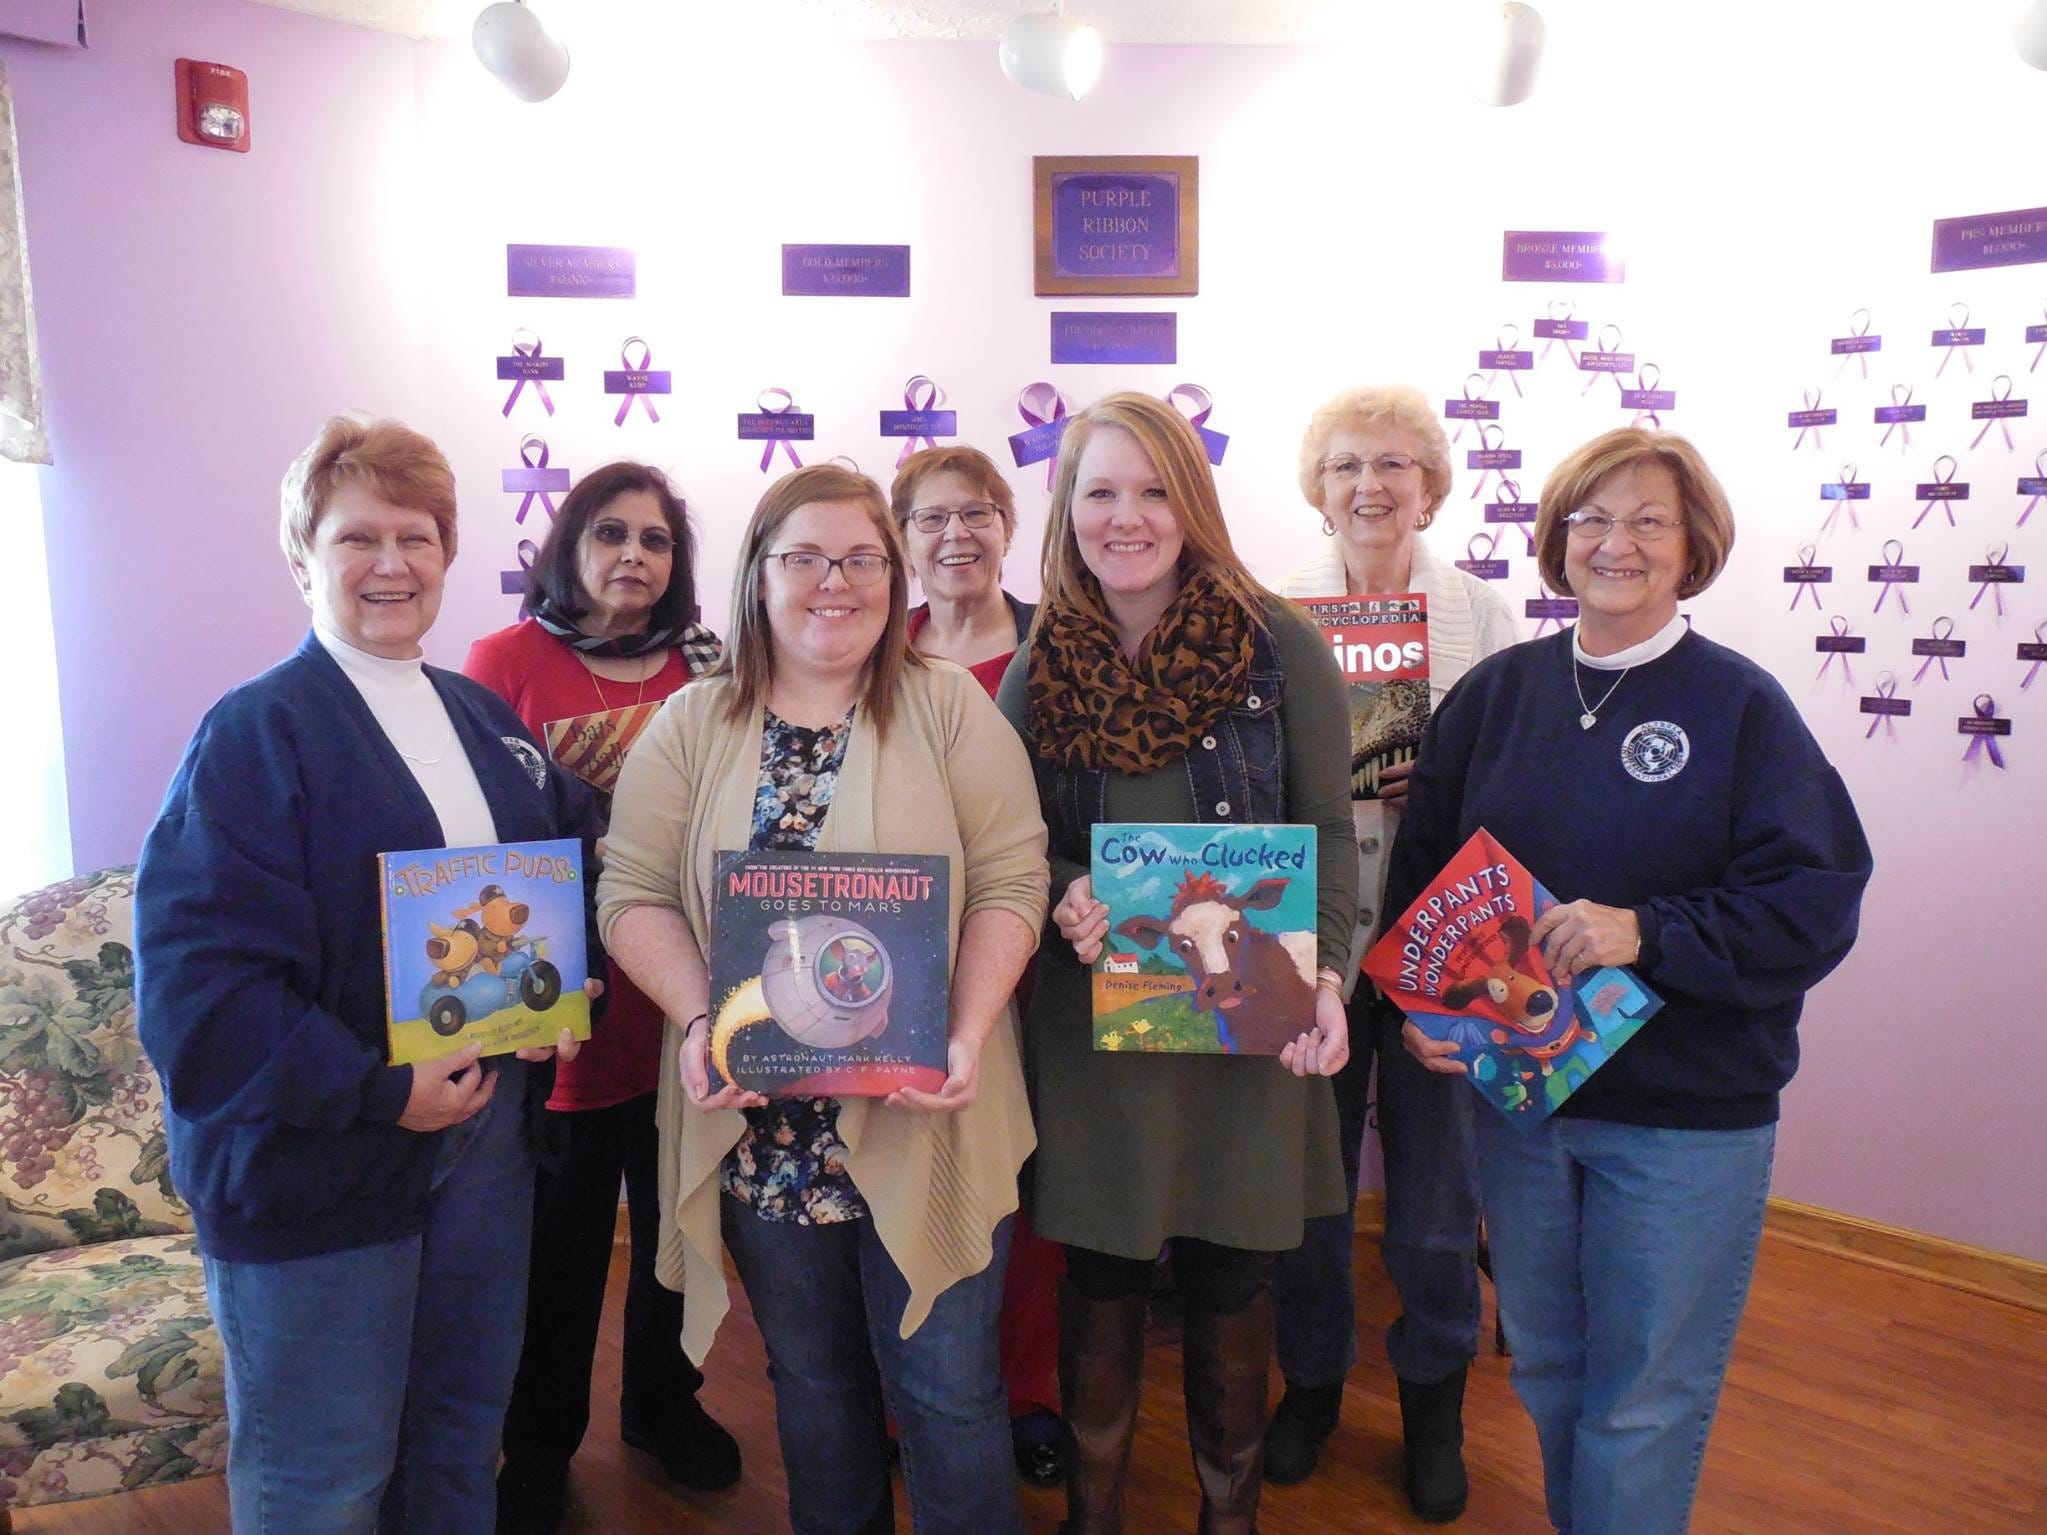 Turning Point is supported locally by numerous donations. Here, members of the Marion Altrusa Club donate children's books to the shelter's library.